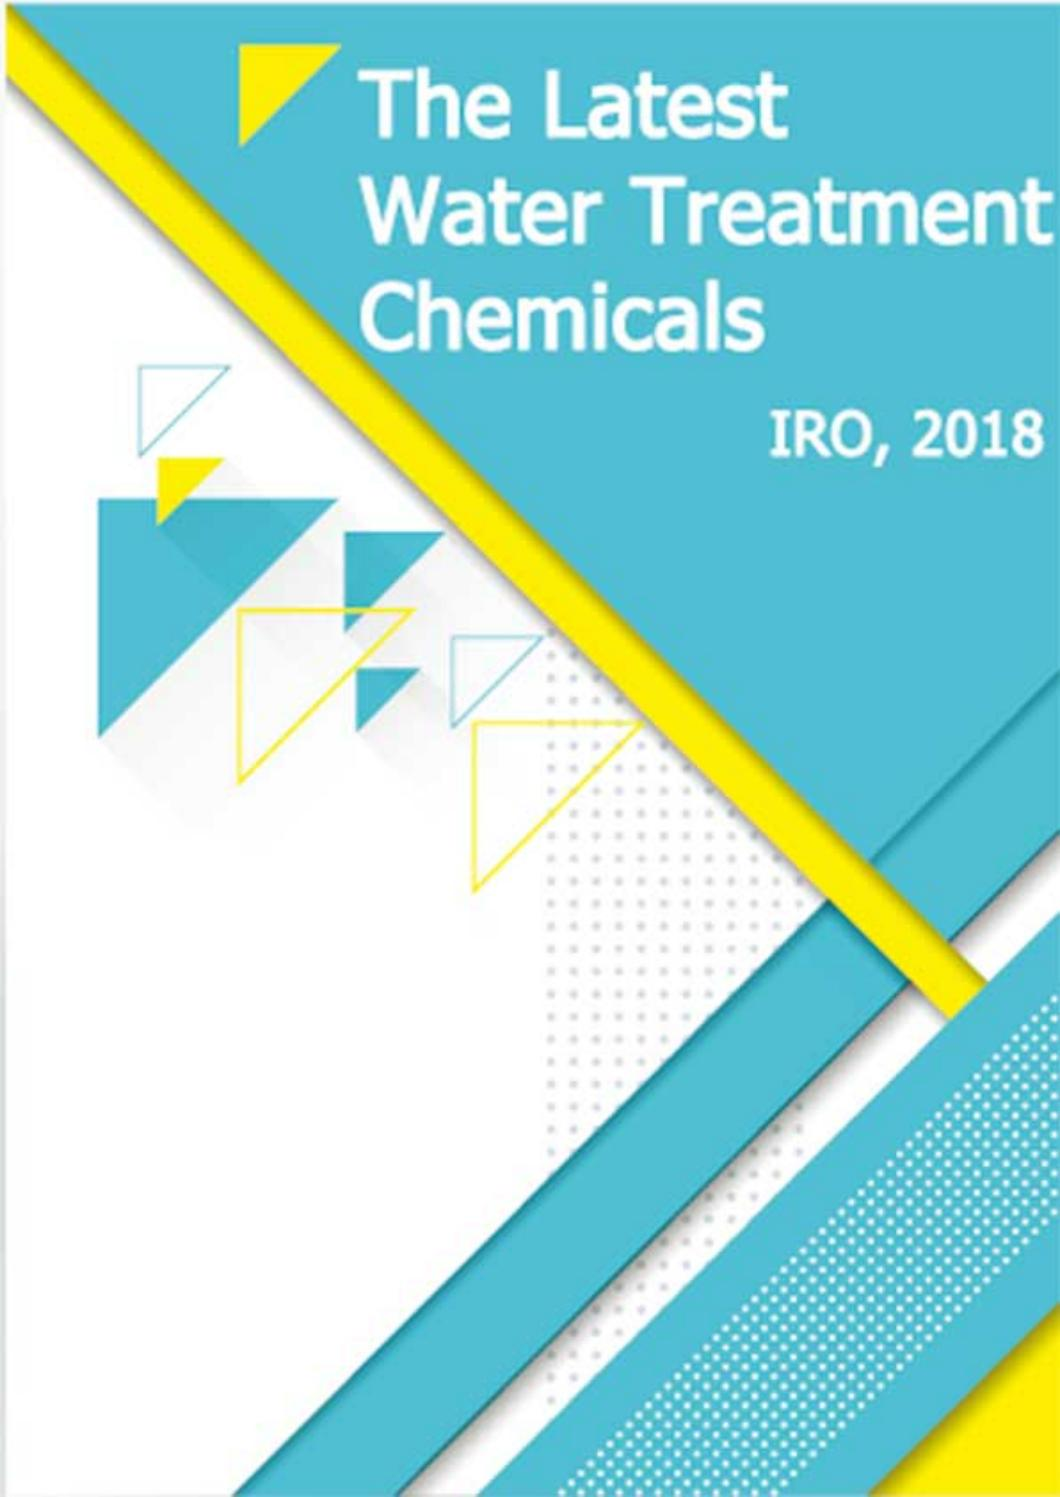 The Latest Water Treatment Chemicals List 2018 of IRO by